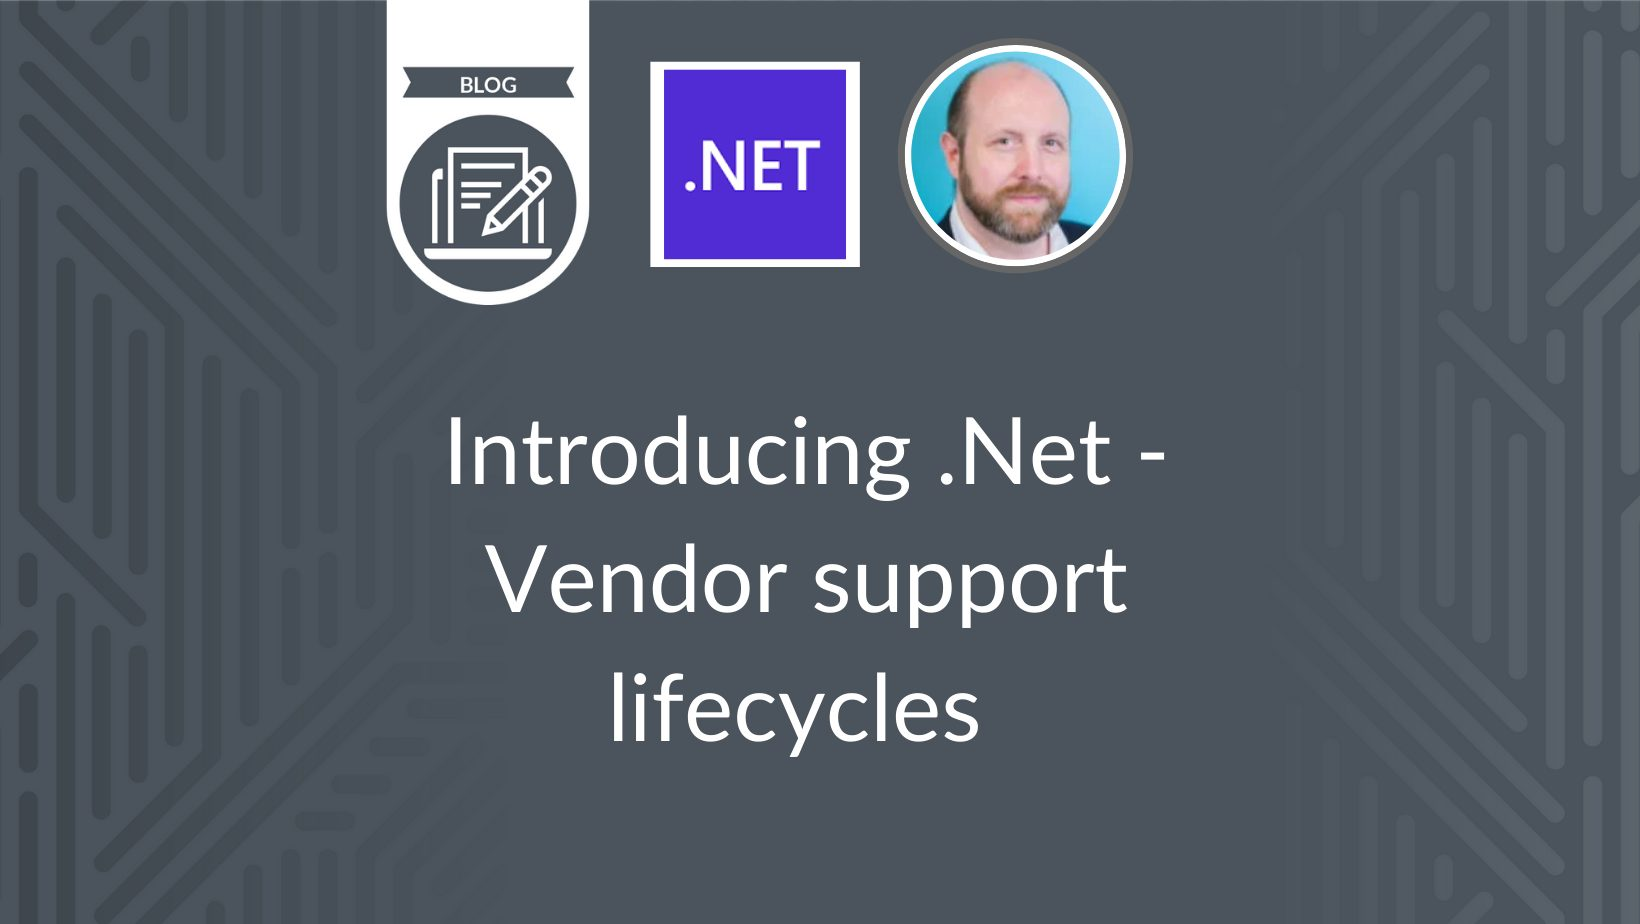 .Net vendor support lifecycles